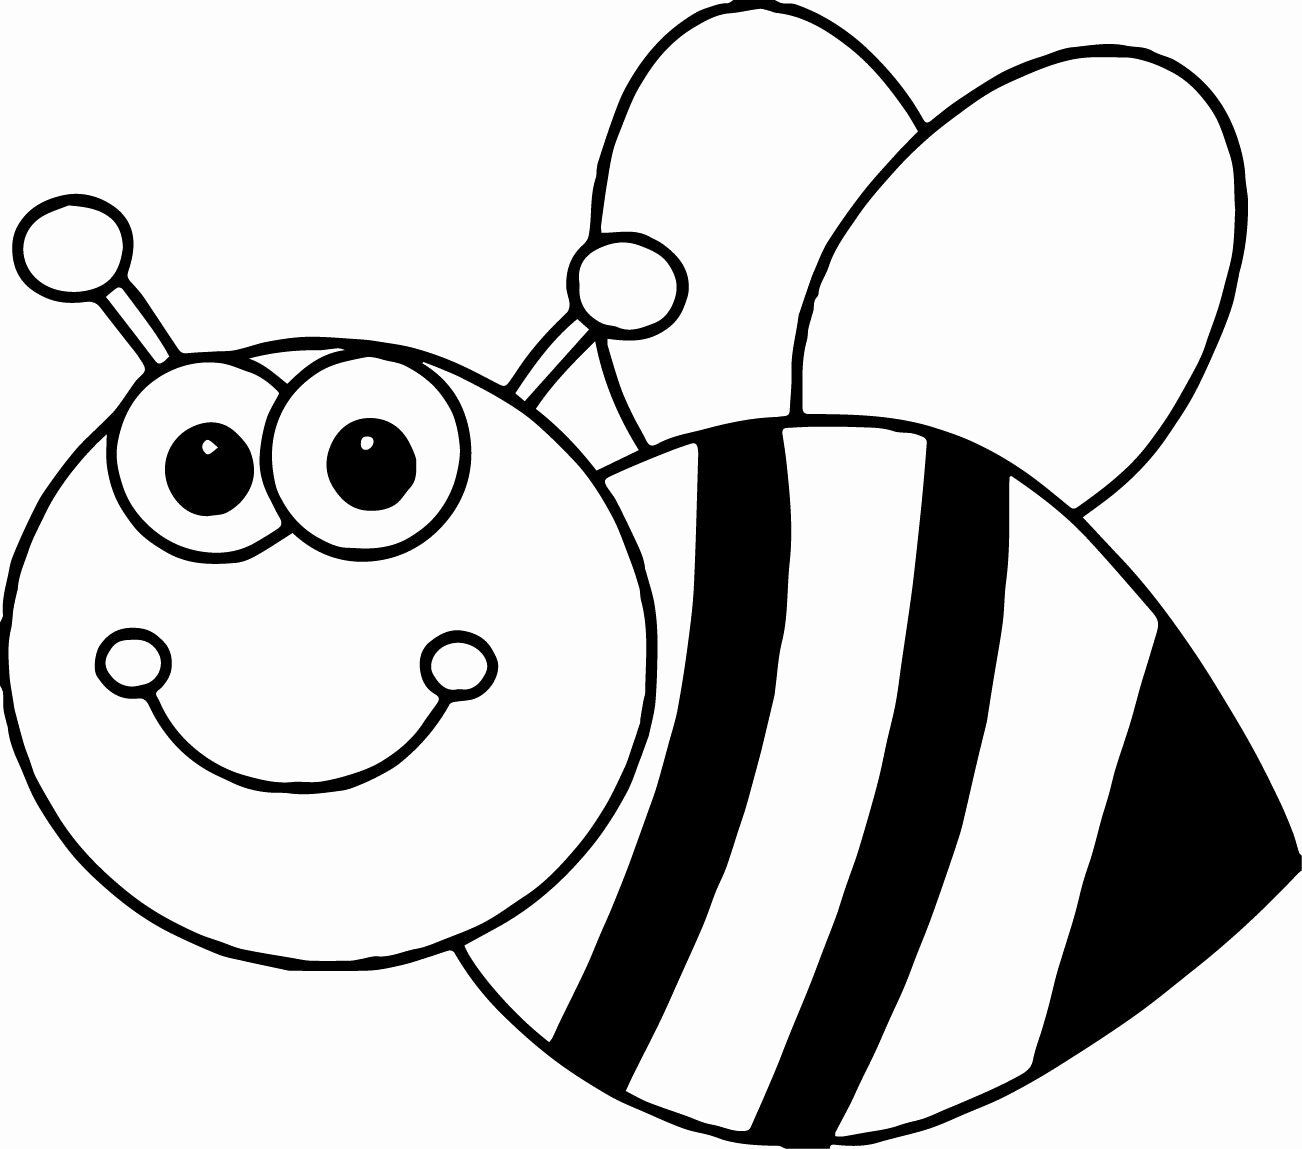 Coloring Pages Of Bees Awesome Bee Coloring Pages Bees Coloring Pages Staggering Rat Lebah Kartun Warna